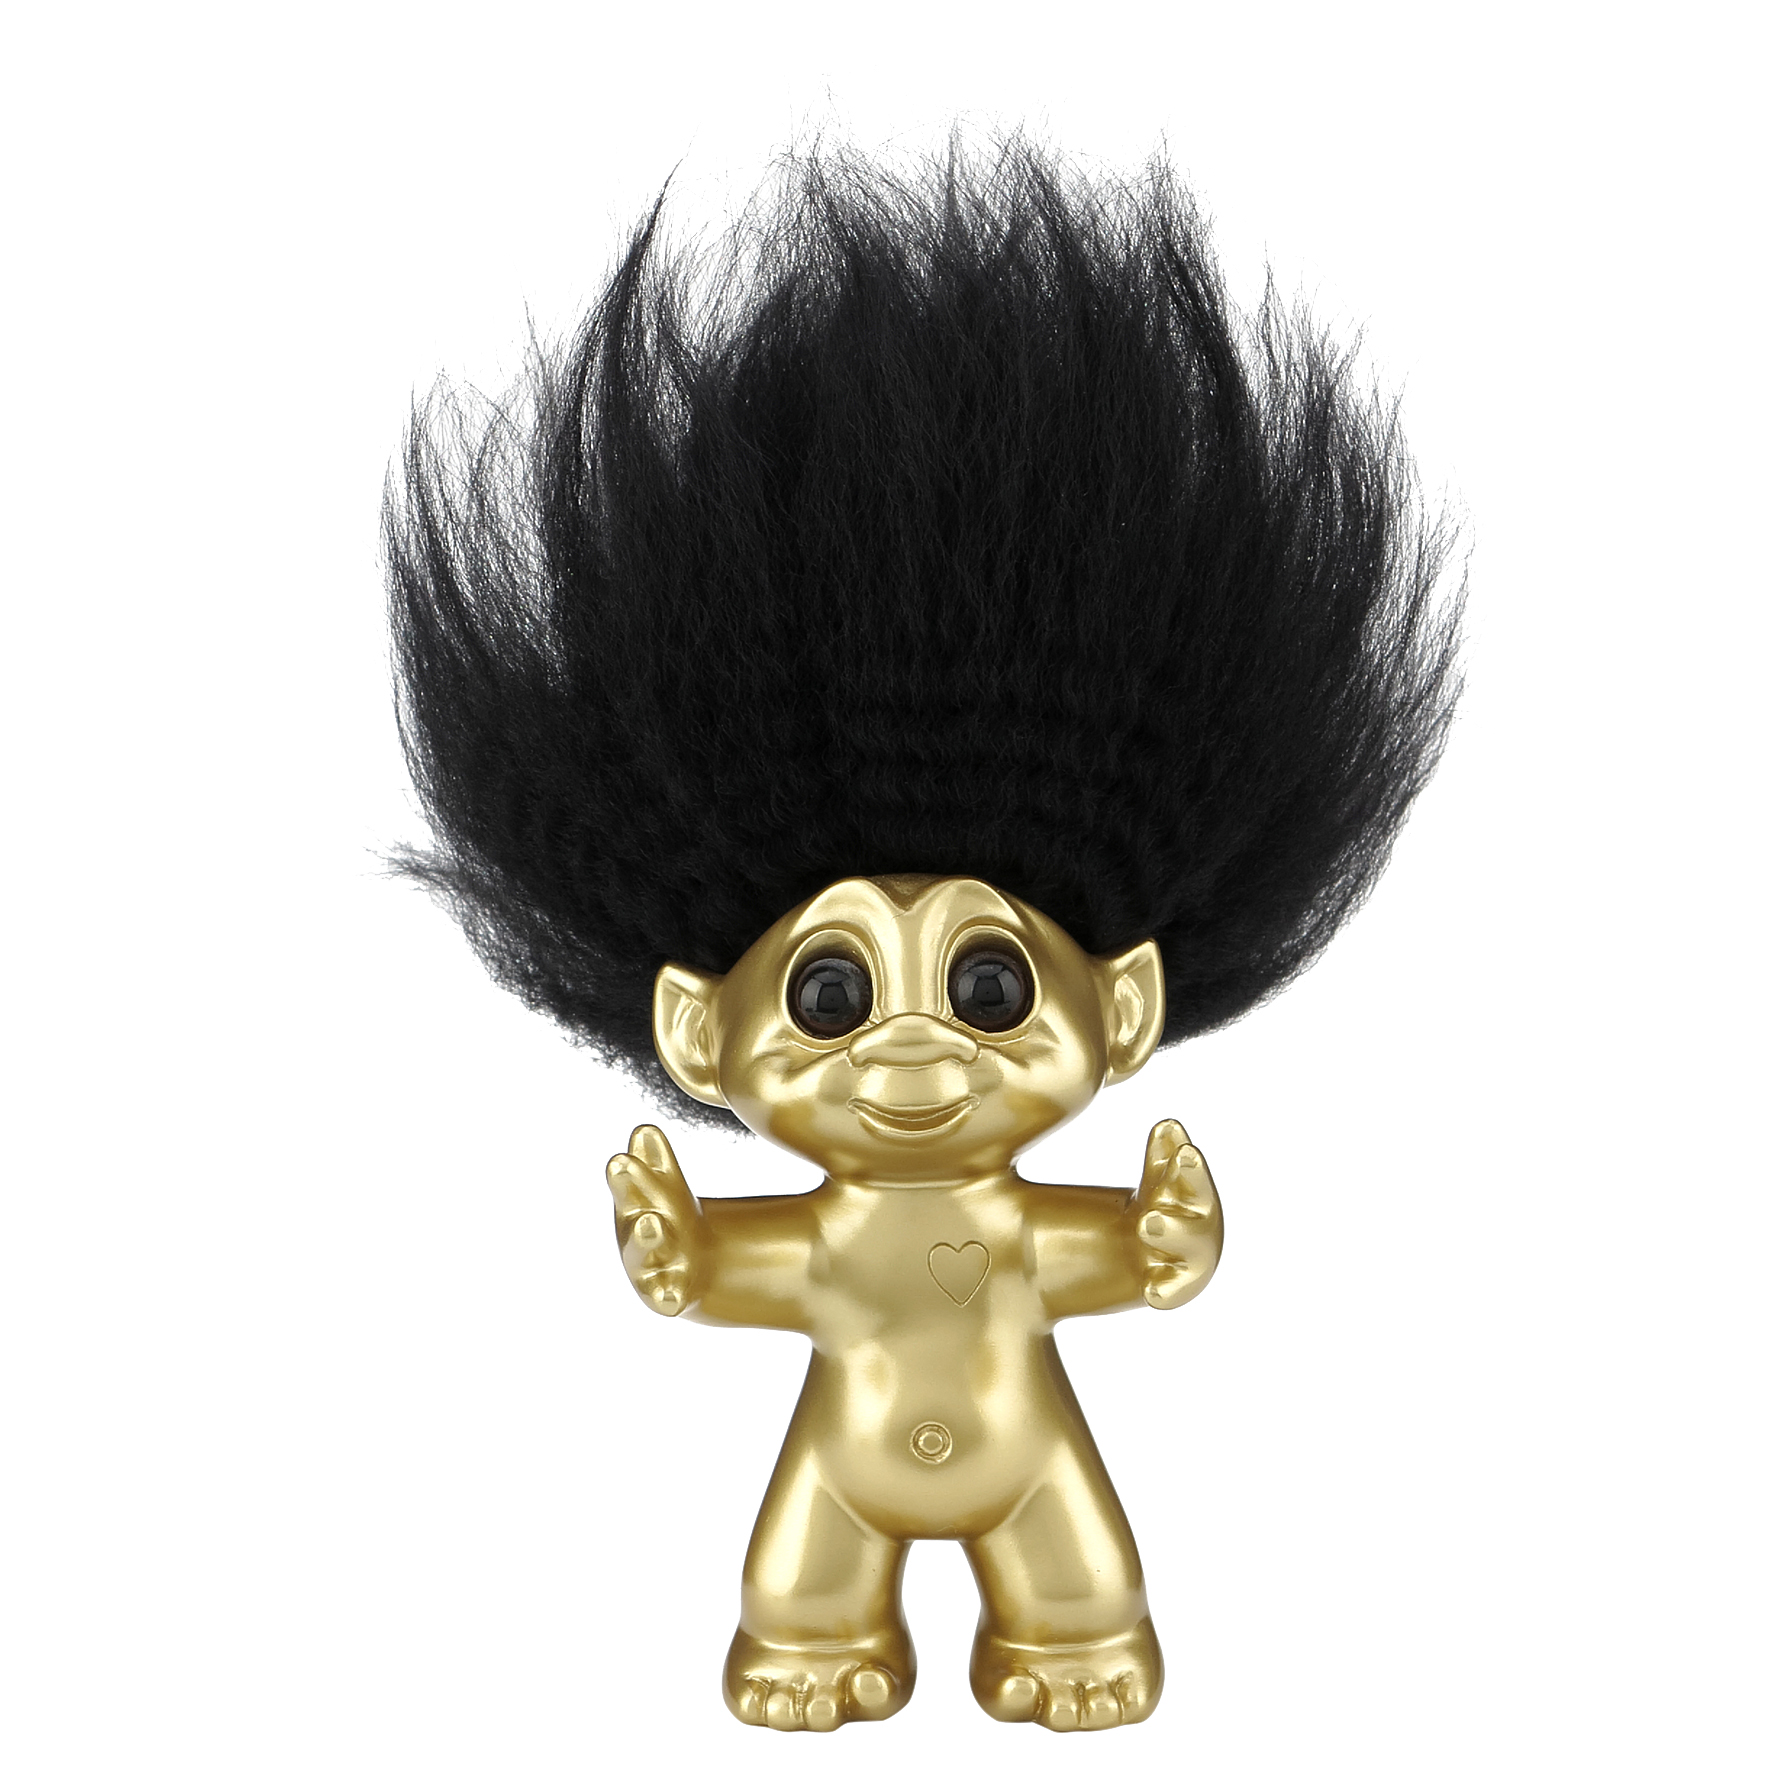 Goodluck Troll – Brushed Brass Color With Black Hair